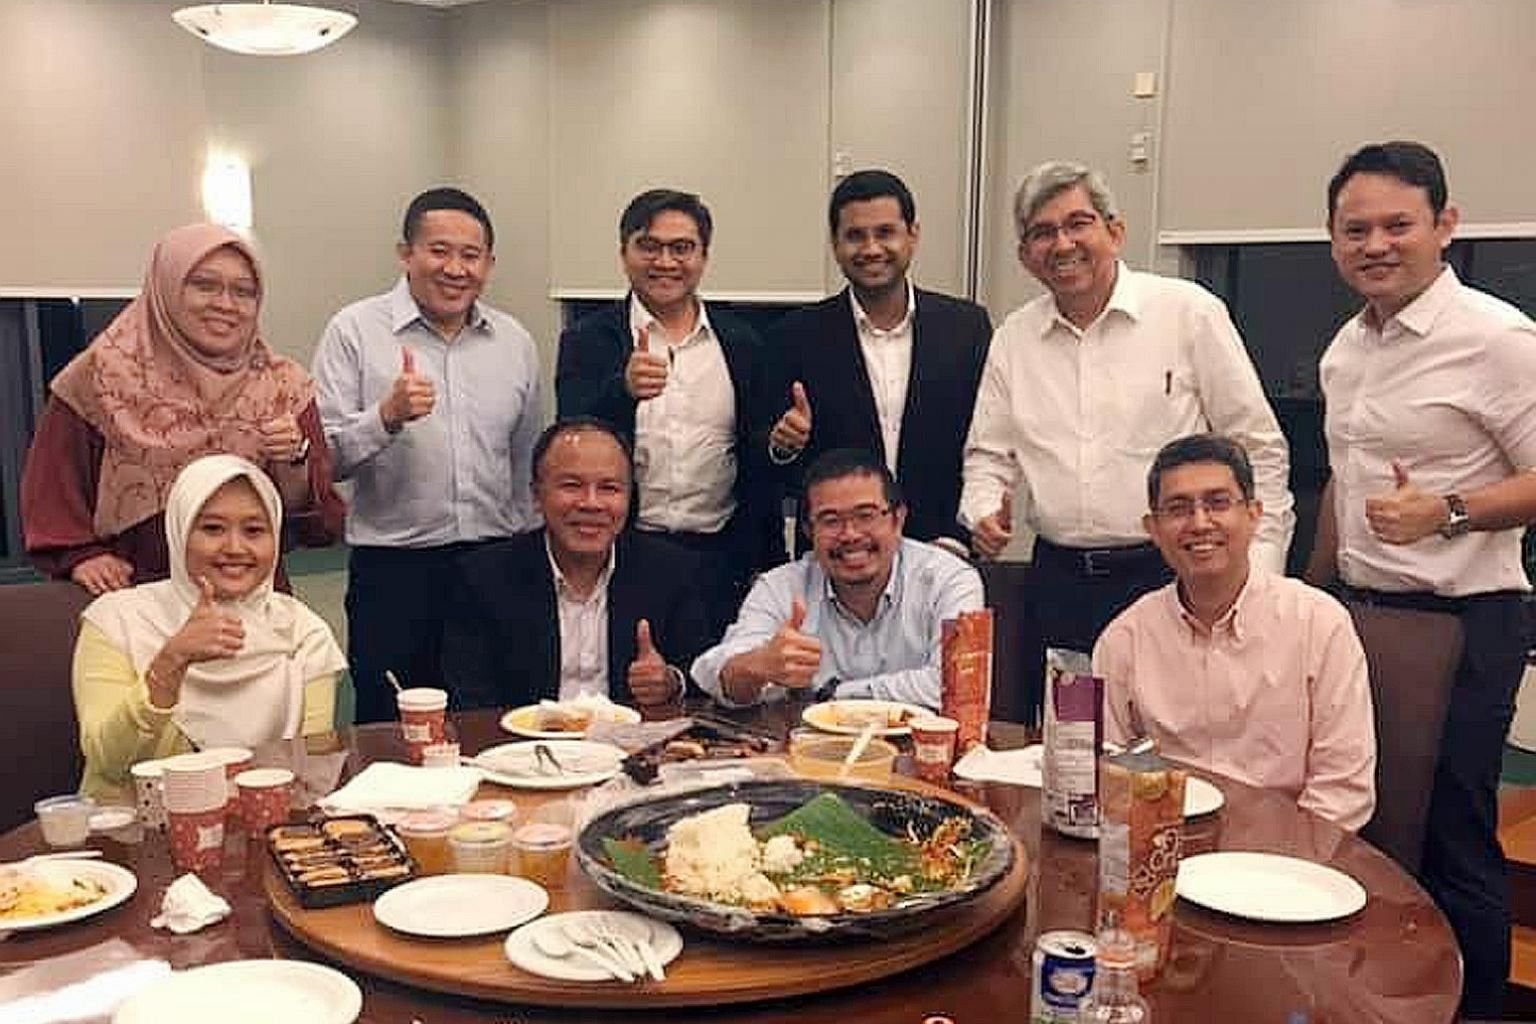 People's Action Party (PAP) and Workers' Party (WP) MPs breaking fast together on Wednesday, a day of a marathon debate in Parliament over new laws to fight online falsehoods. The Online Falsehoods and Manipulation Bill was passed at around 10.20pm,